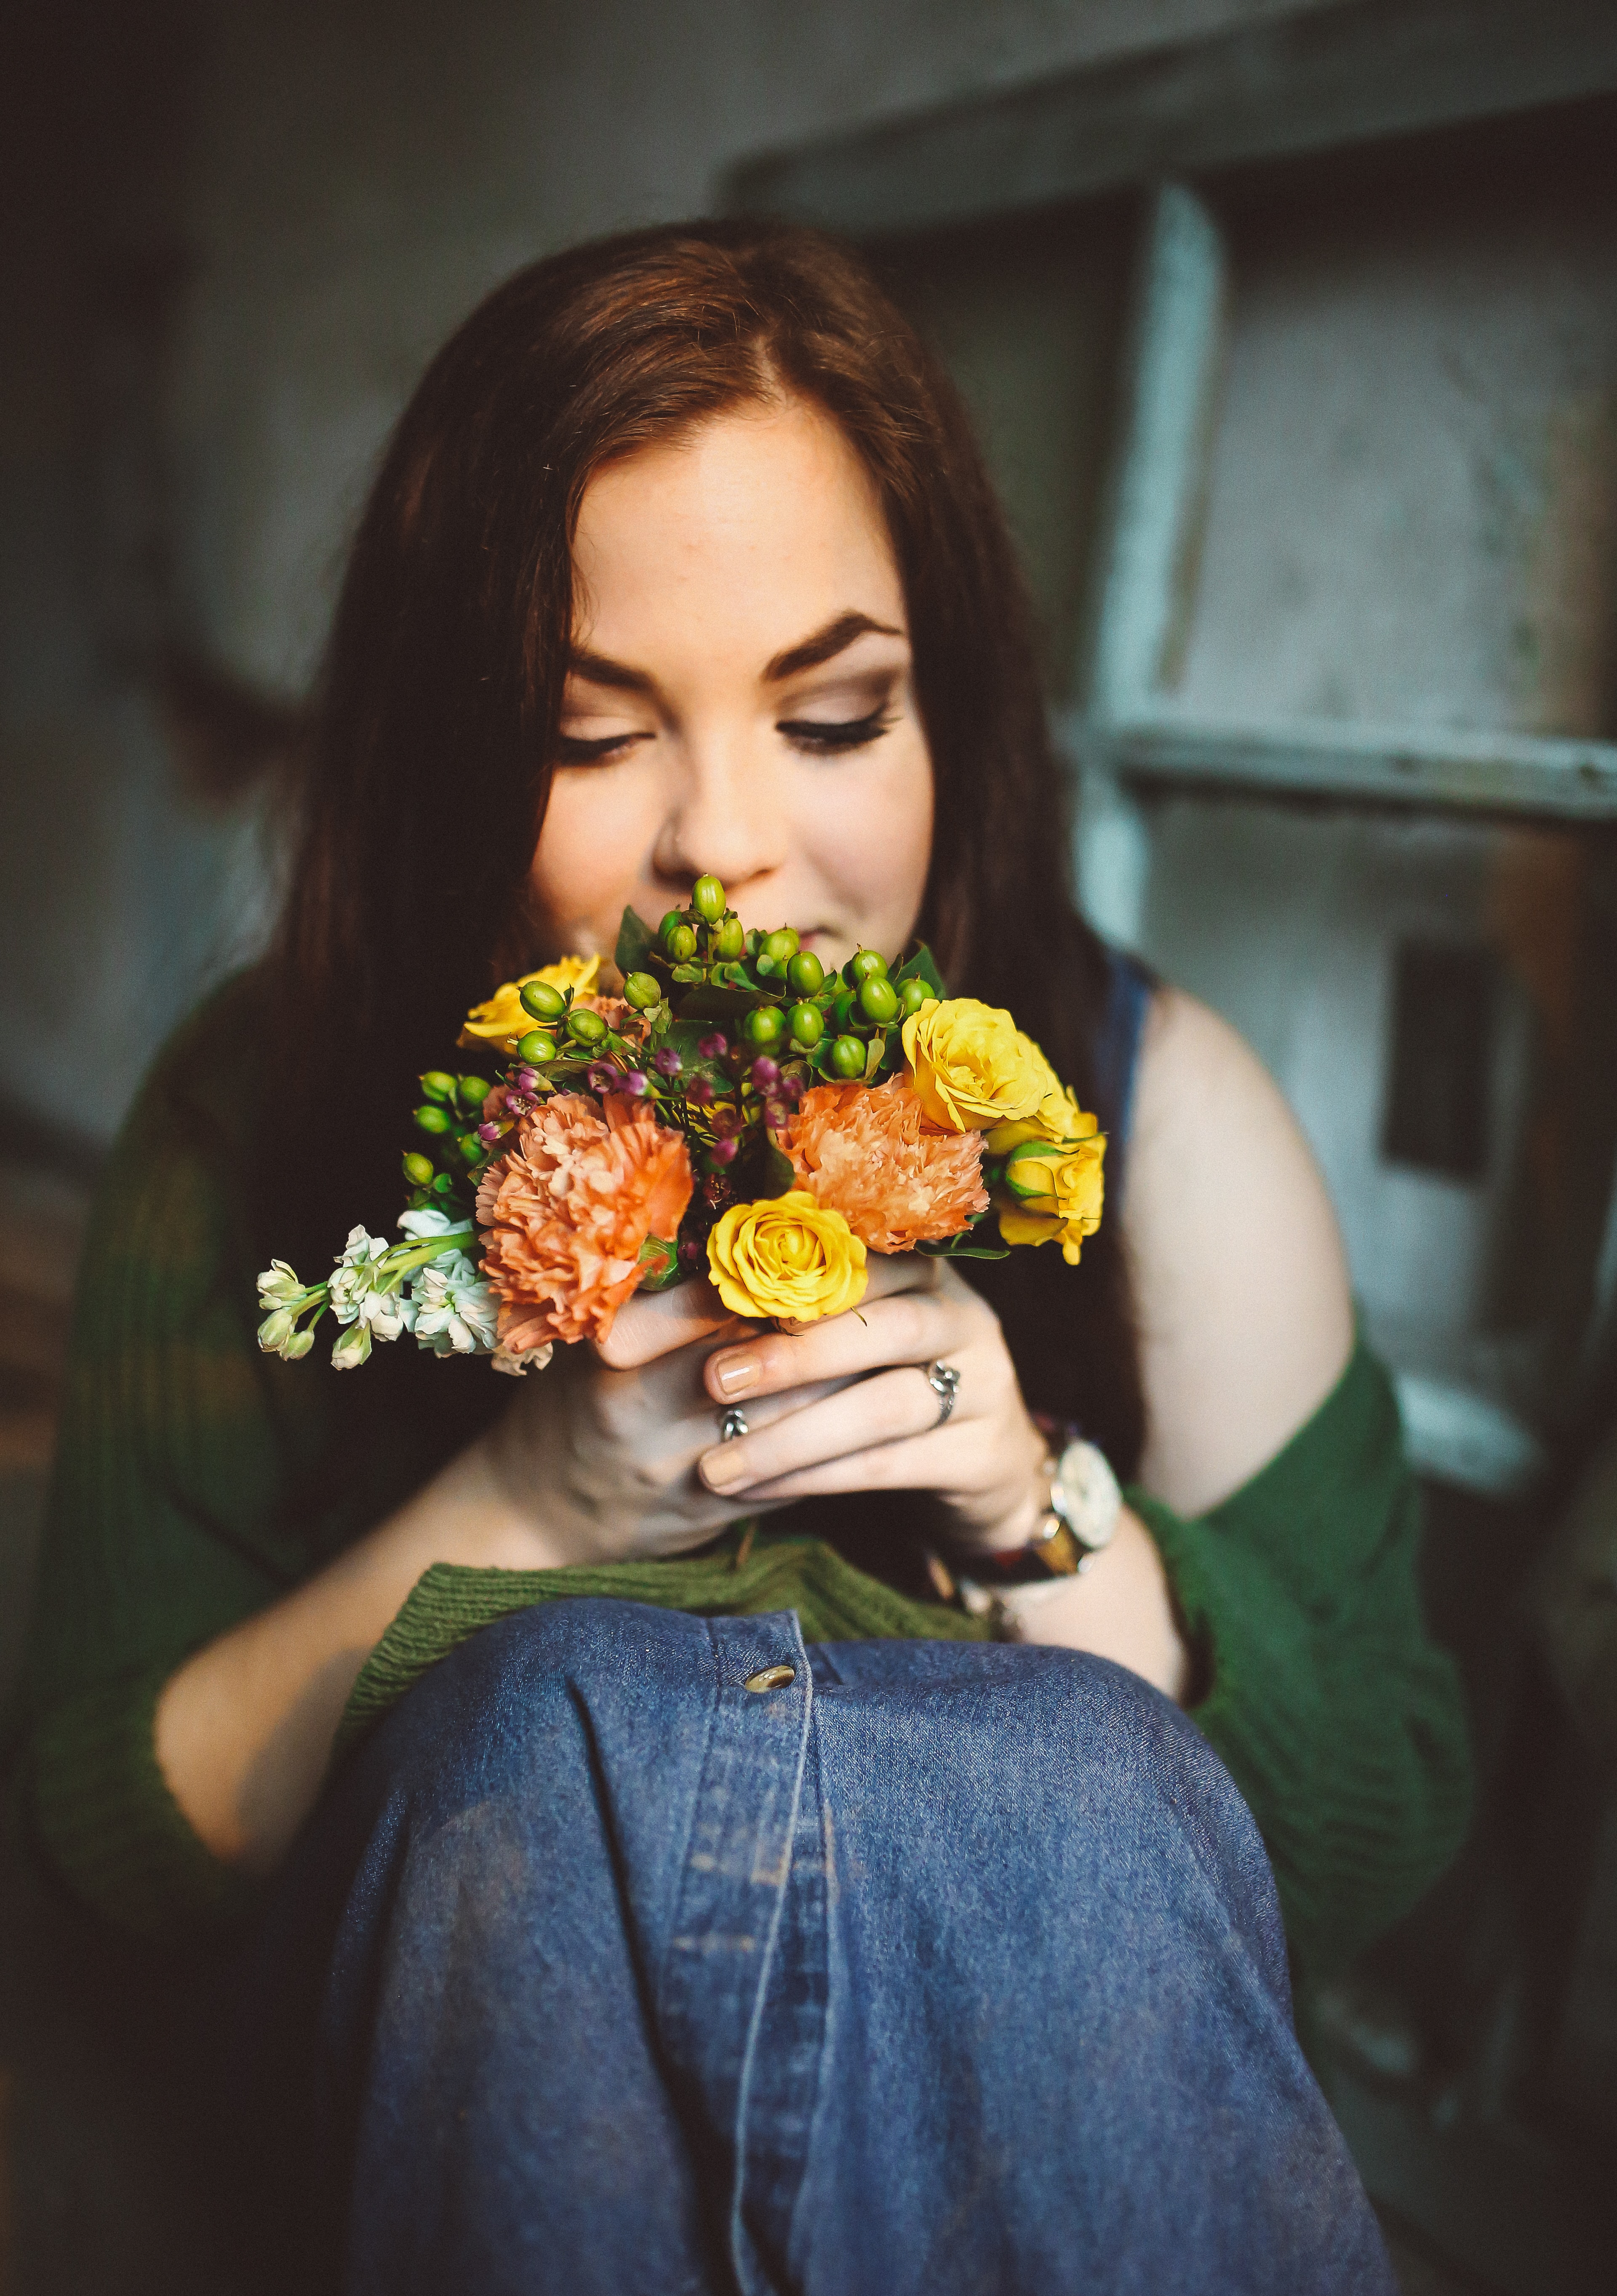 A young woman sitting on the floor and smelling a small bouquet of flowers